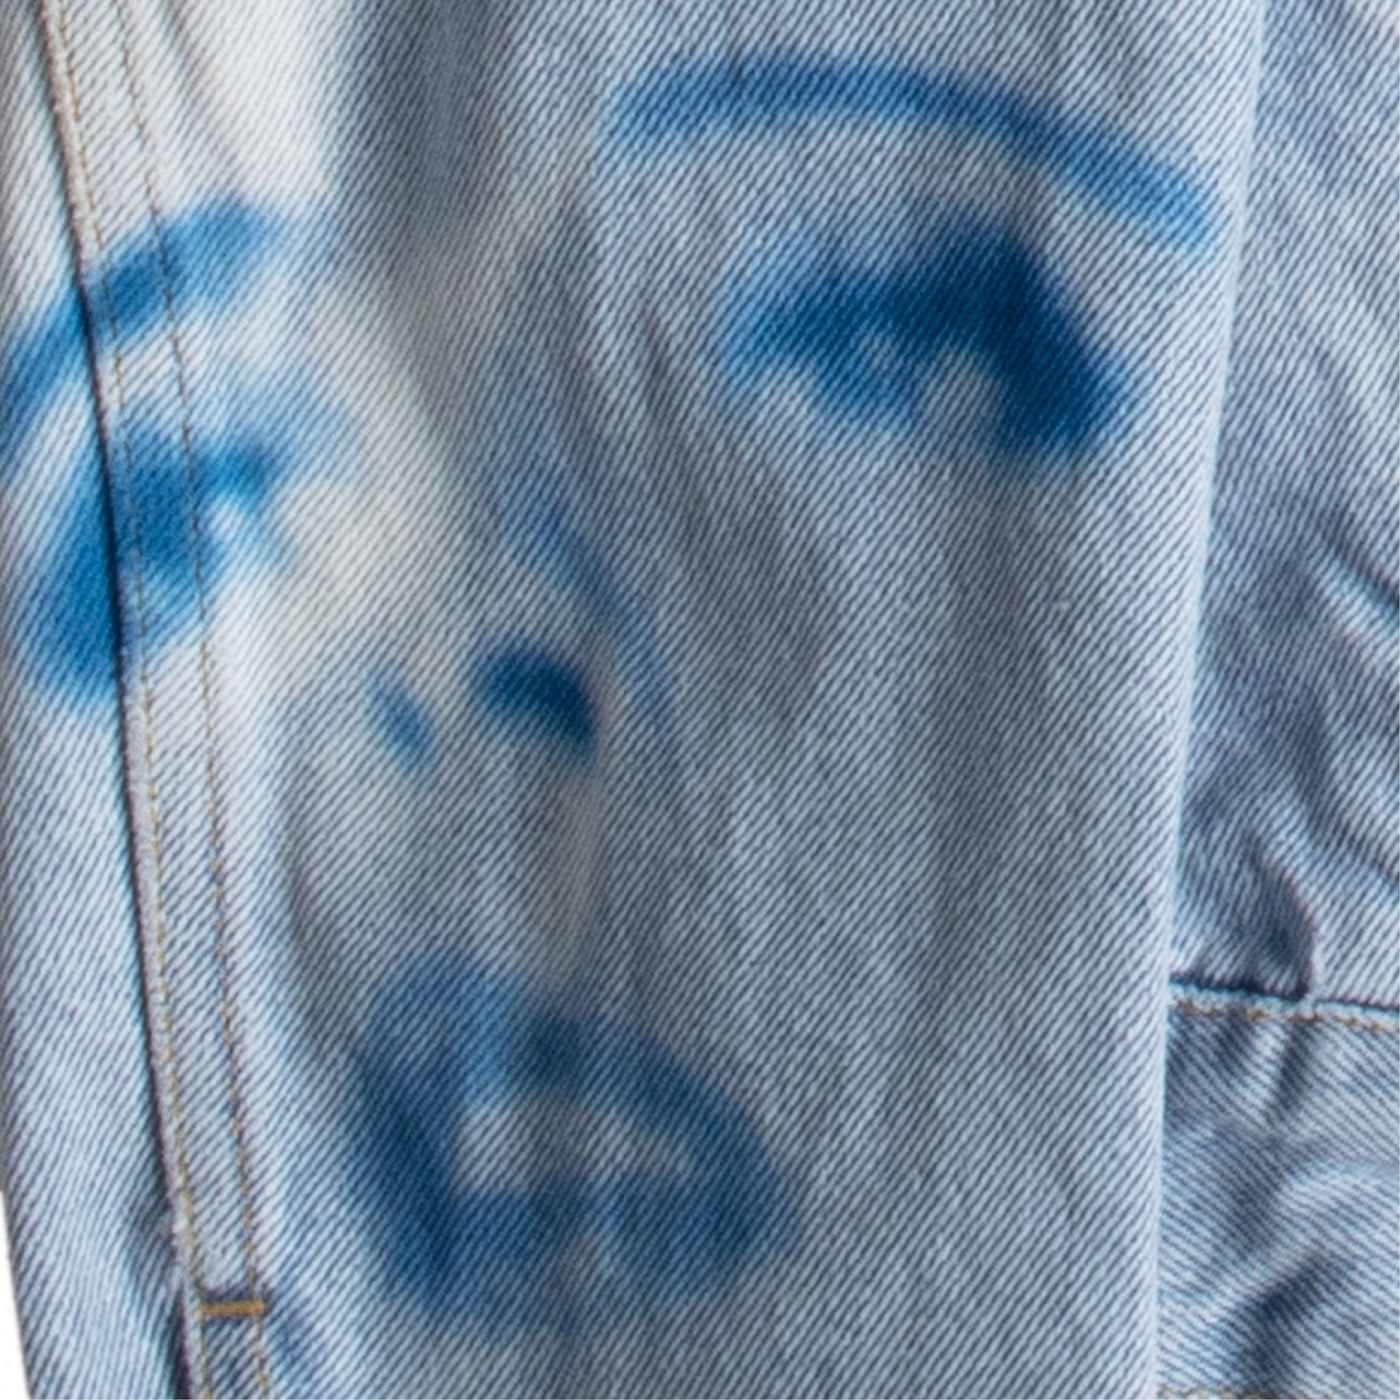 Load image into Gallery viewer, OFF-WHITE PRINTED FACE DENIM JACKET BLUE